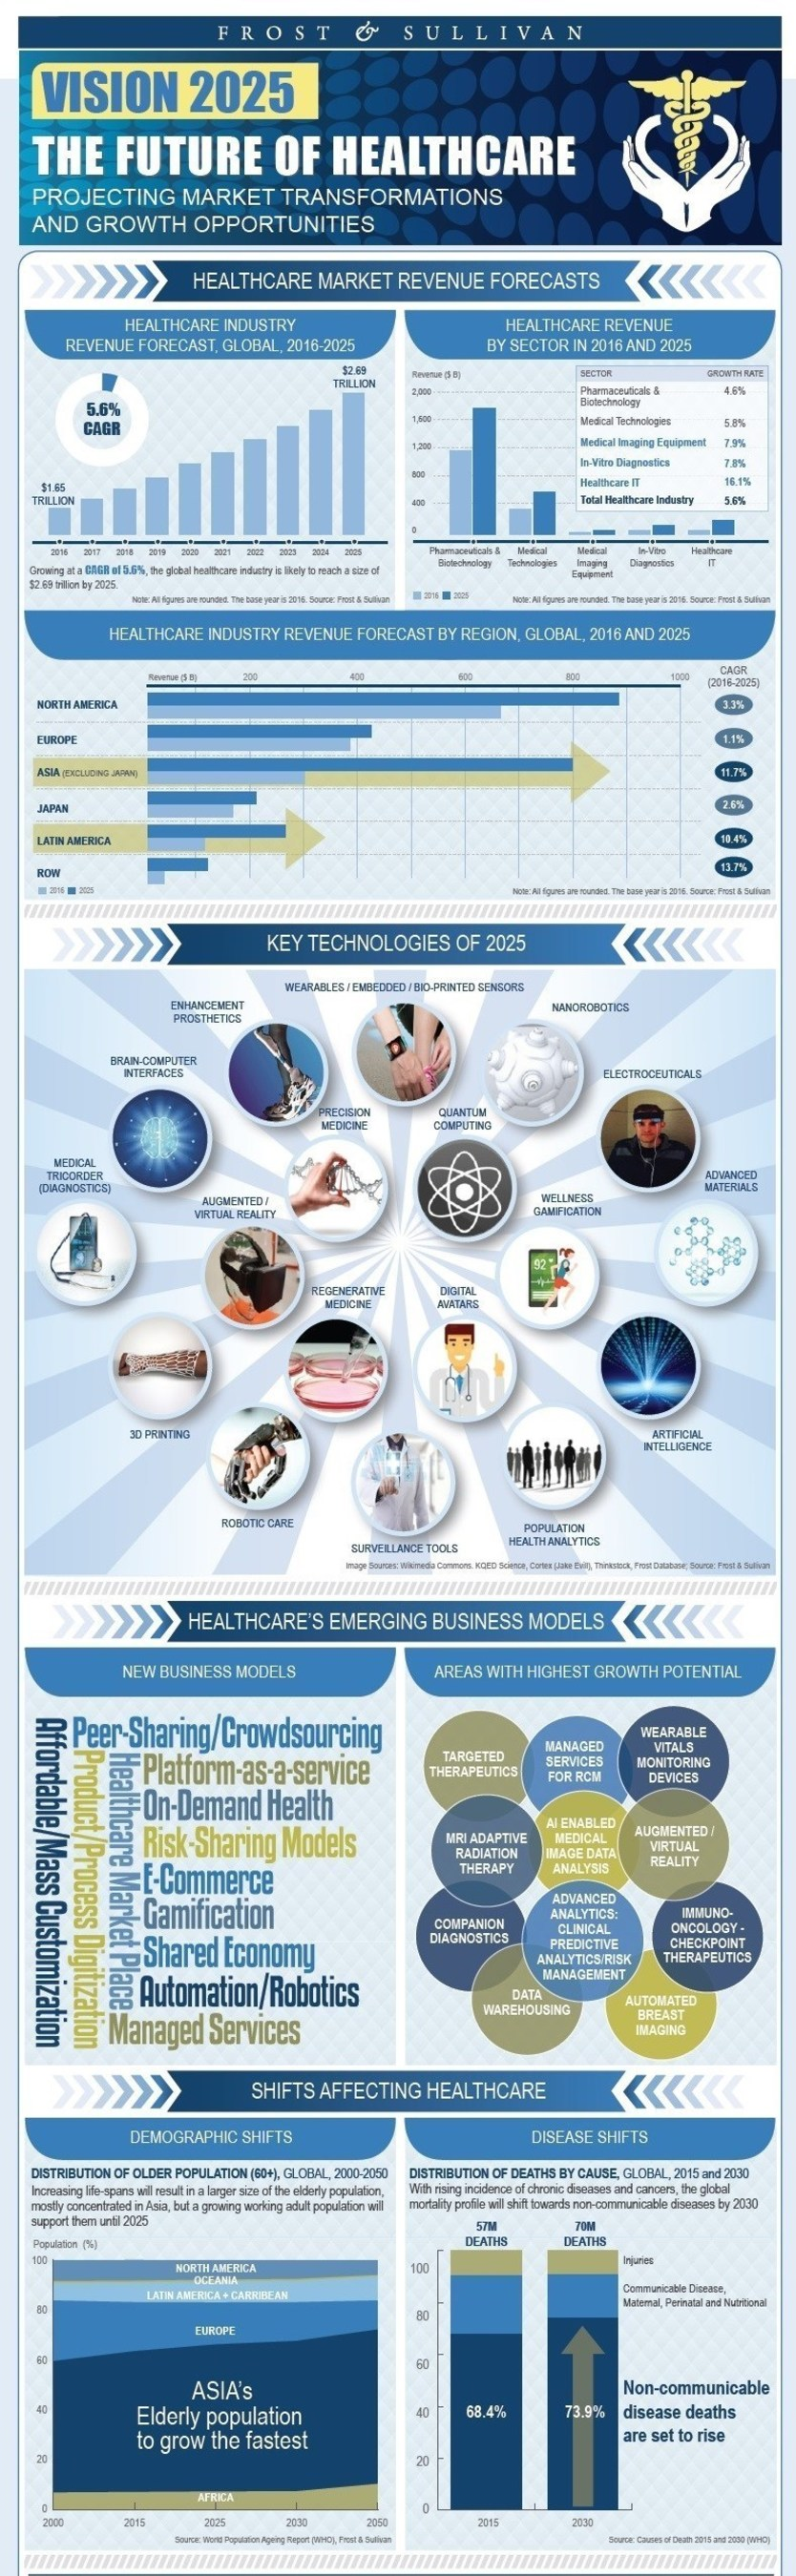 Frost_and_Sullivan___The_Future_of_Healthcare_Infographic